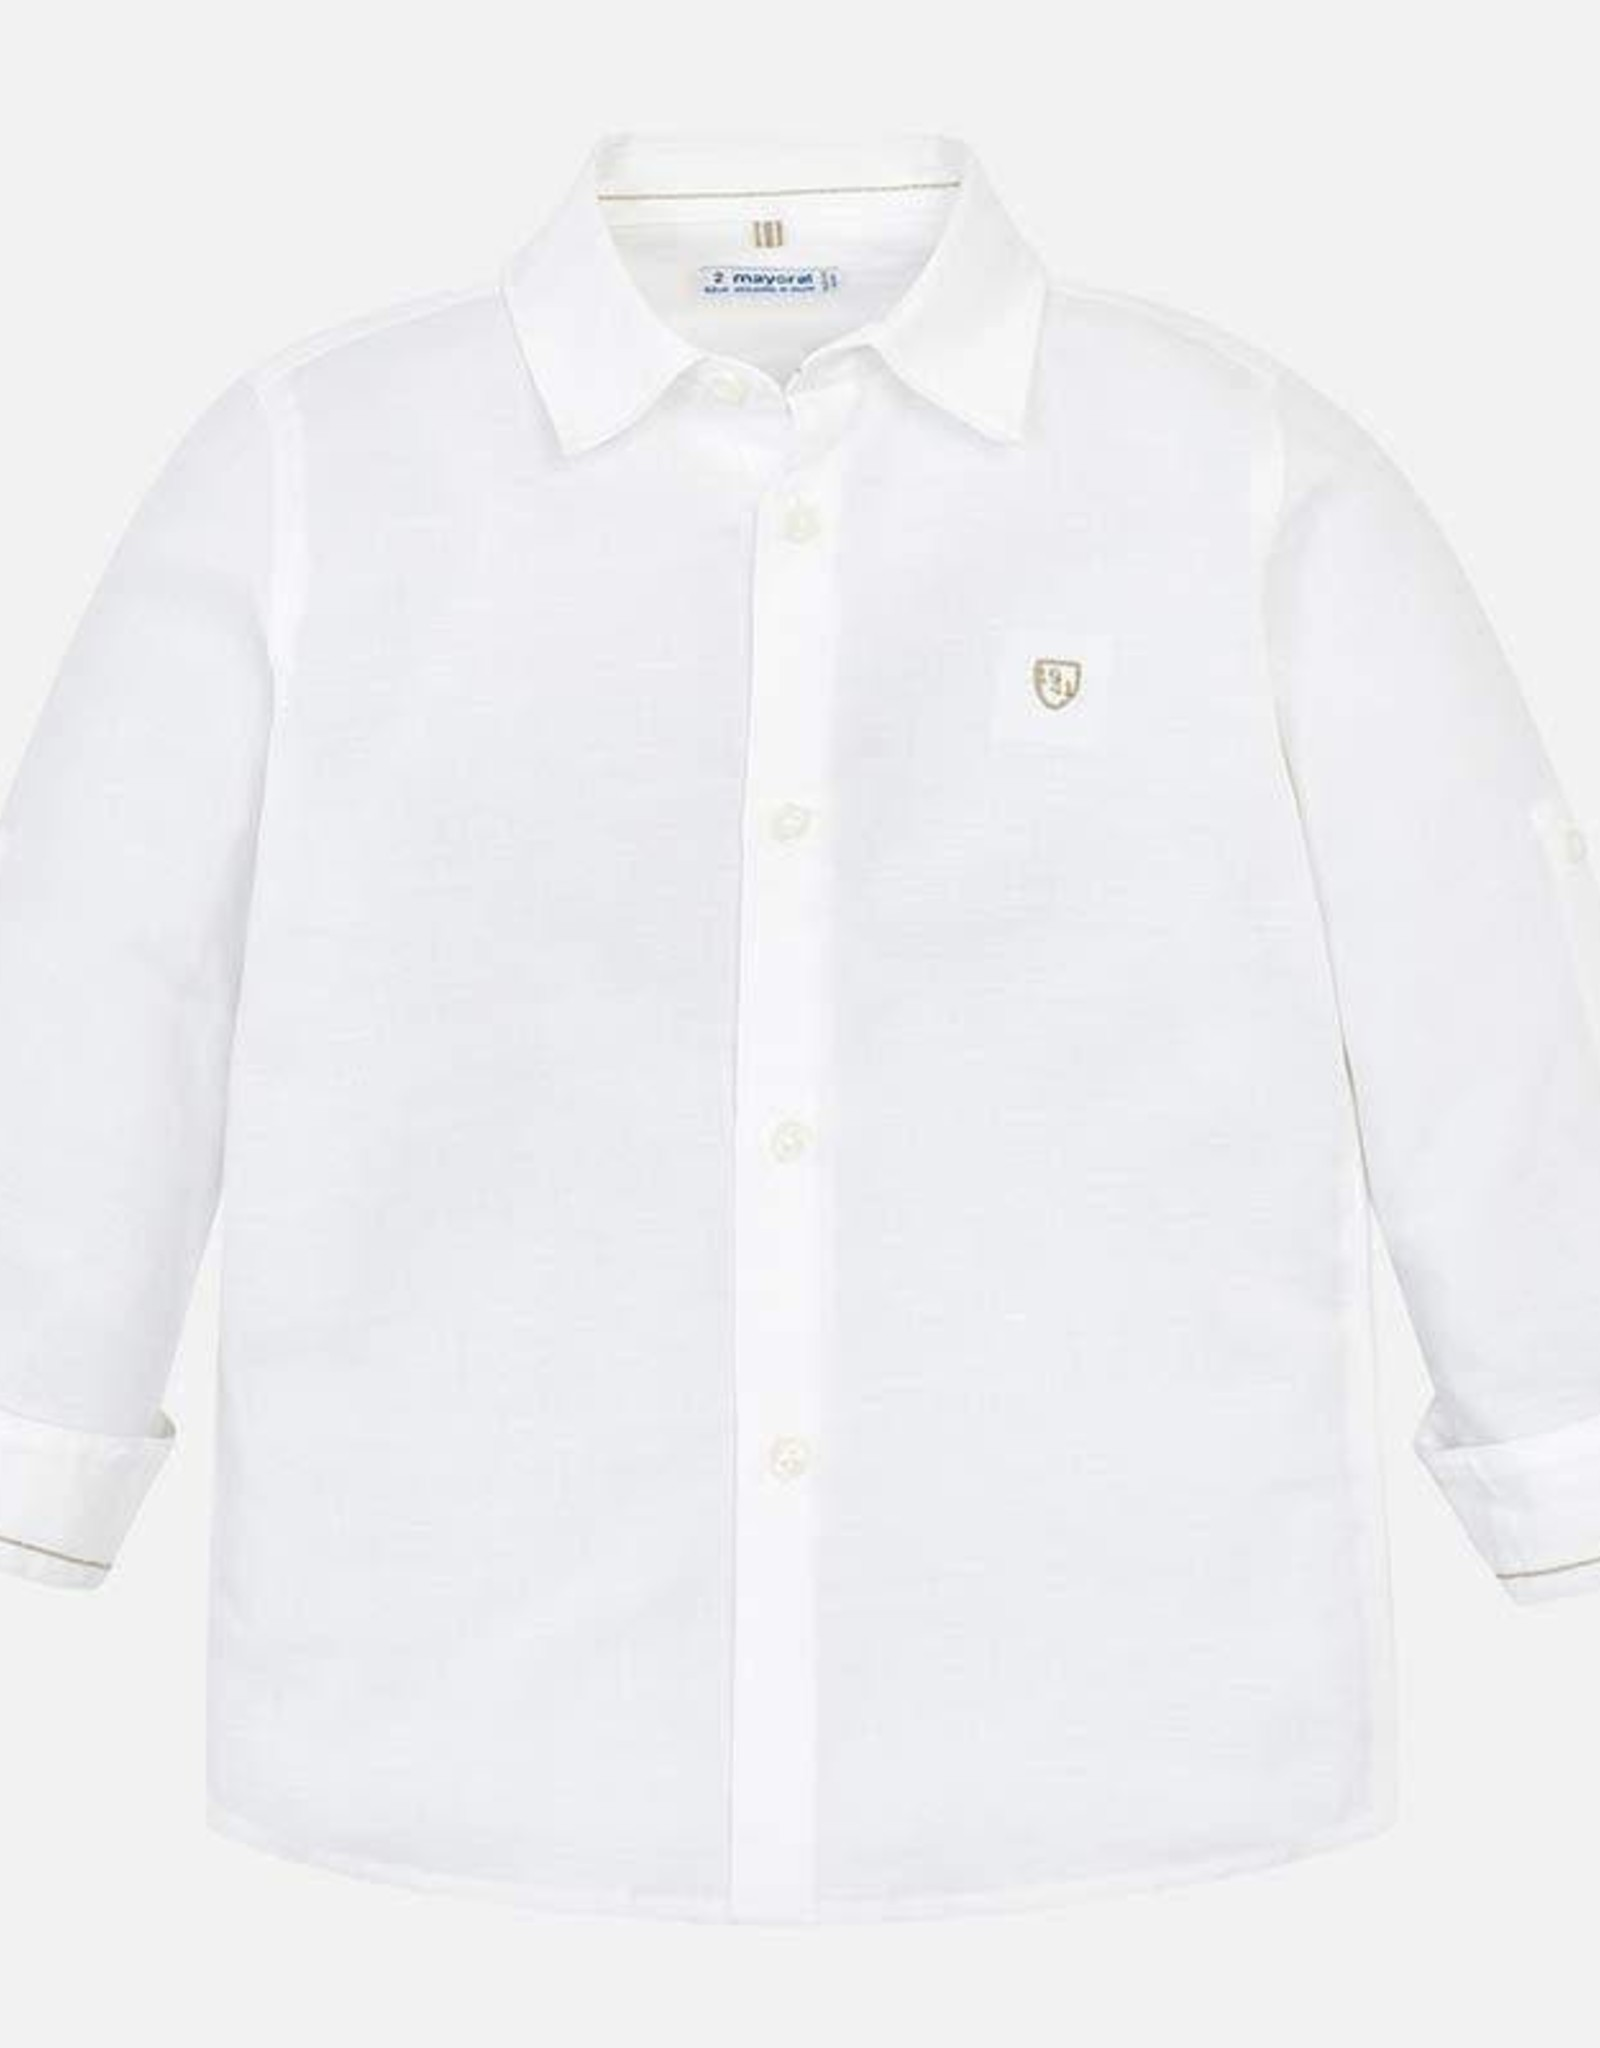 Mayoral White Linen Long Sleeved Shirt